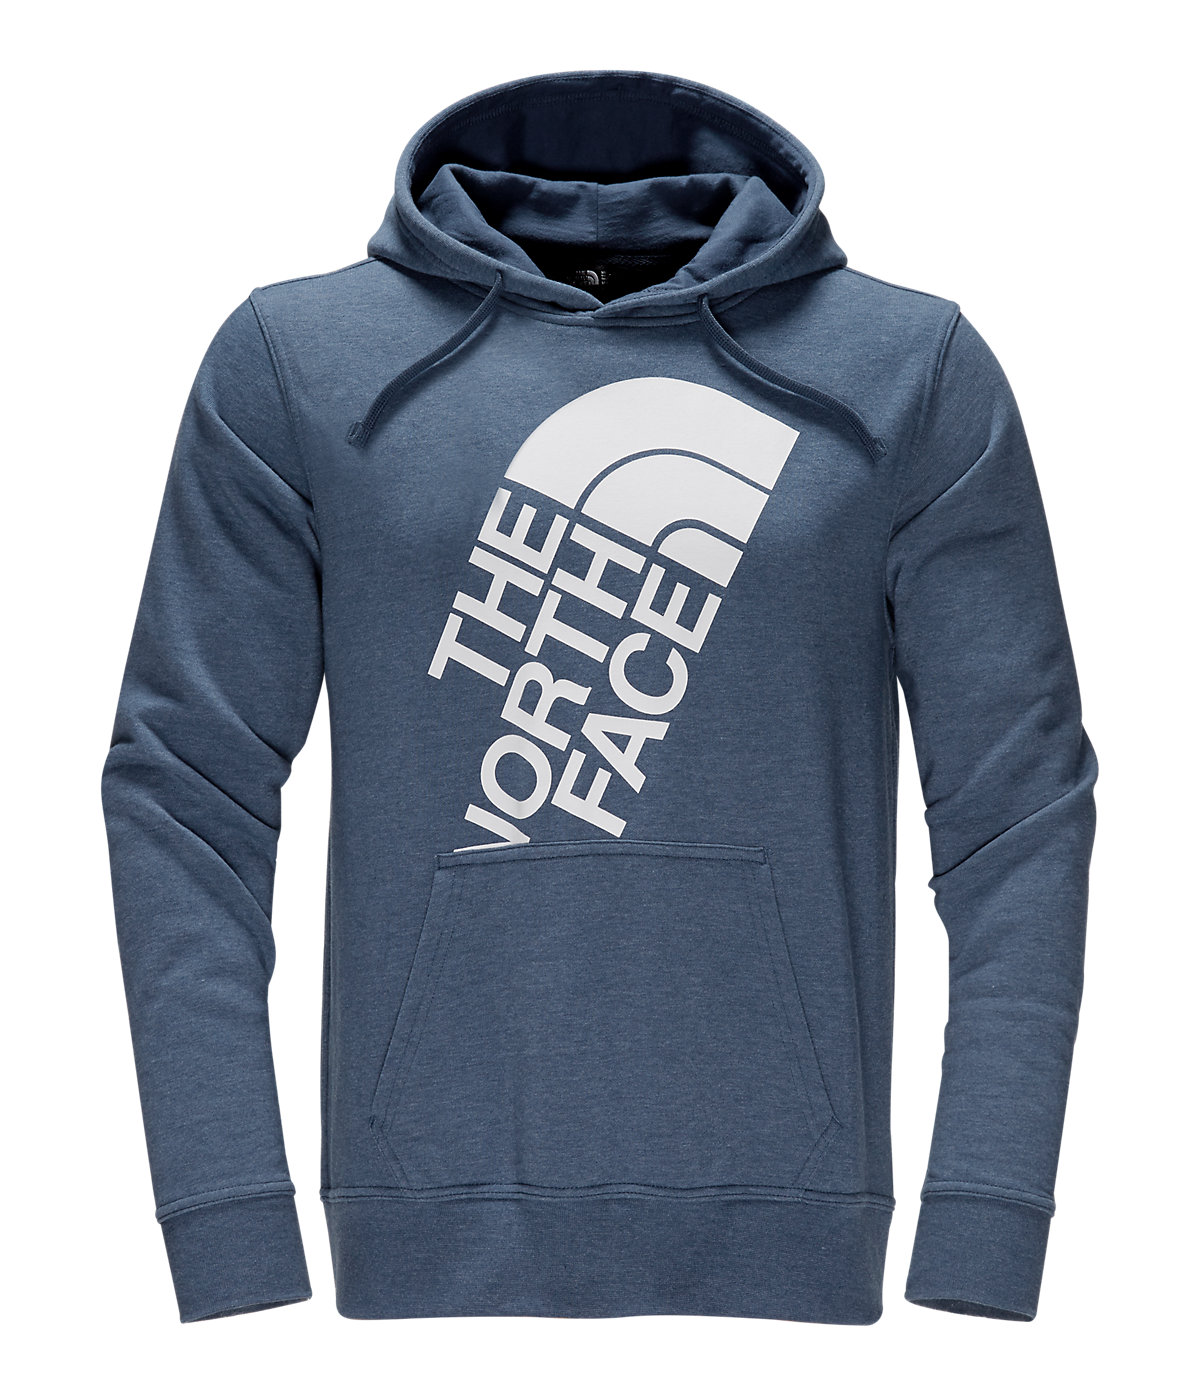 100% high quality online retailer fashion The North Face MEN'S JUMBO HALF DOME HOODIE